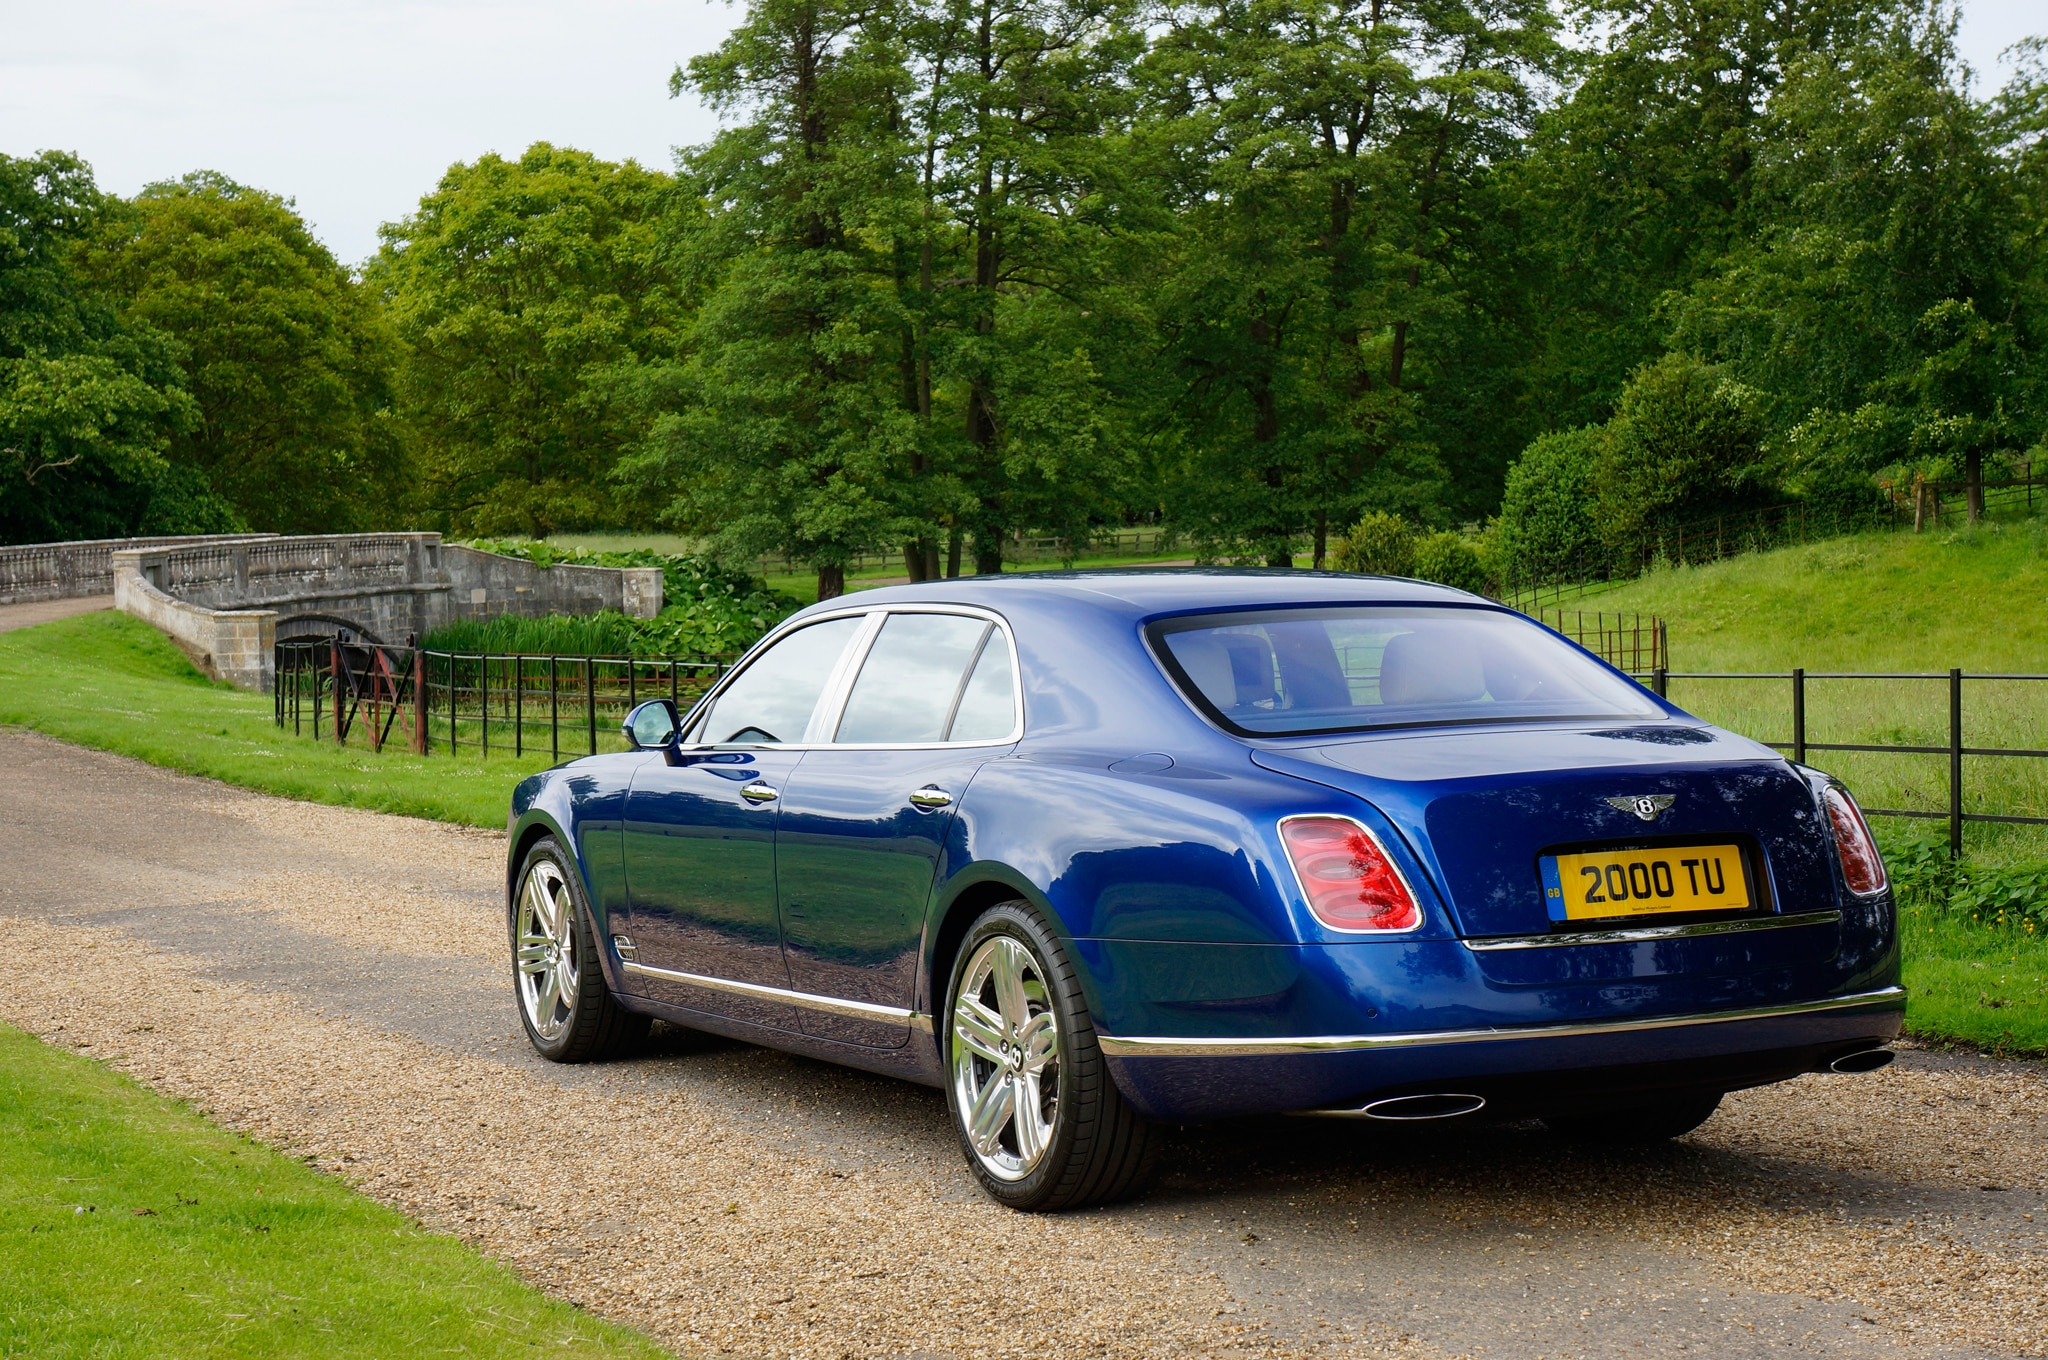 The Bentley Mulsanne S Very Limited: Bentley Mulsanne Le Mans Limited Edition Revealed